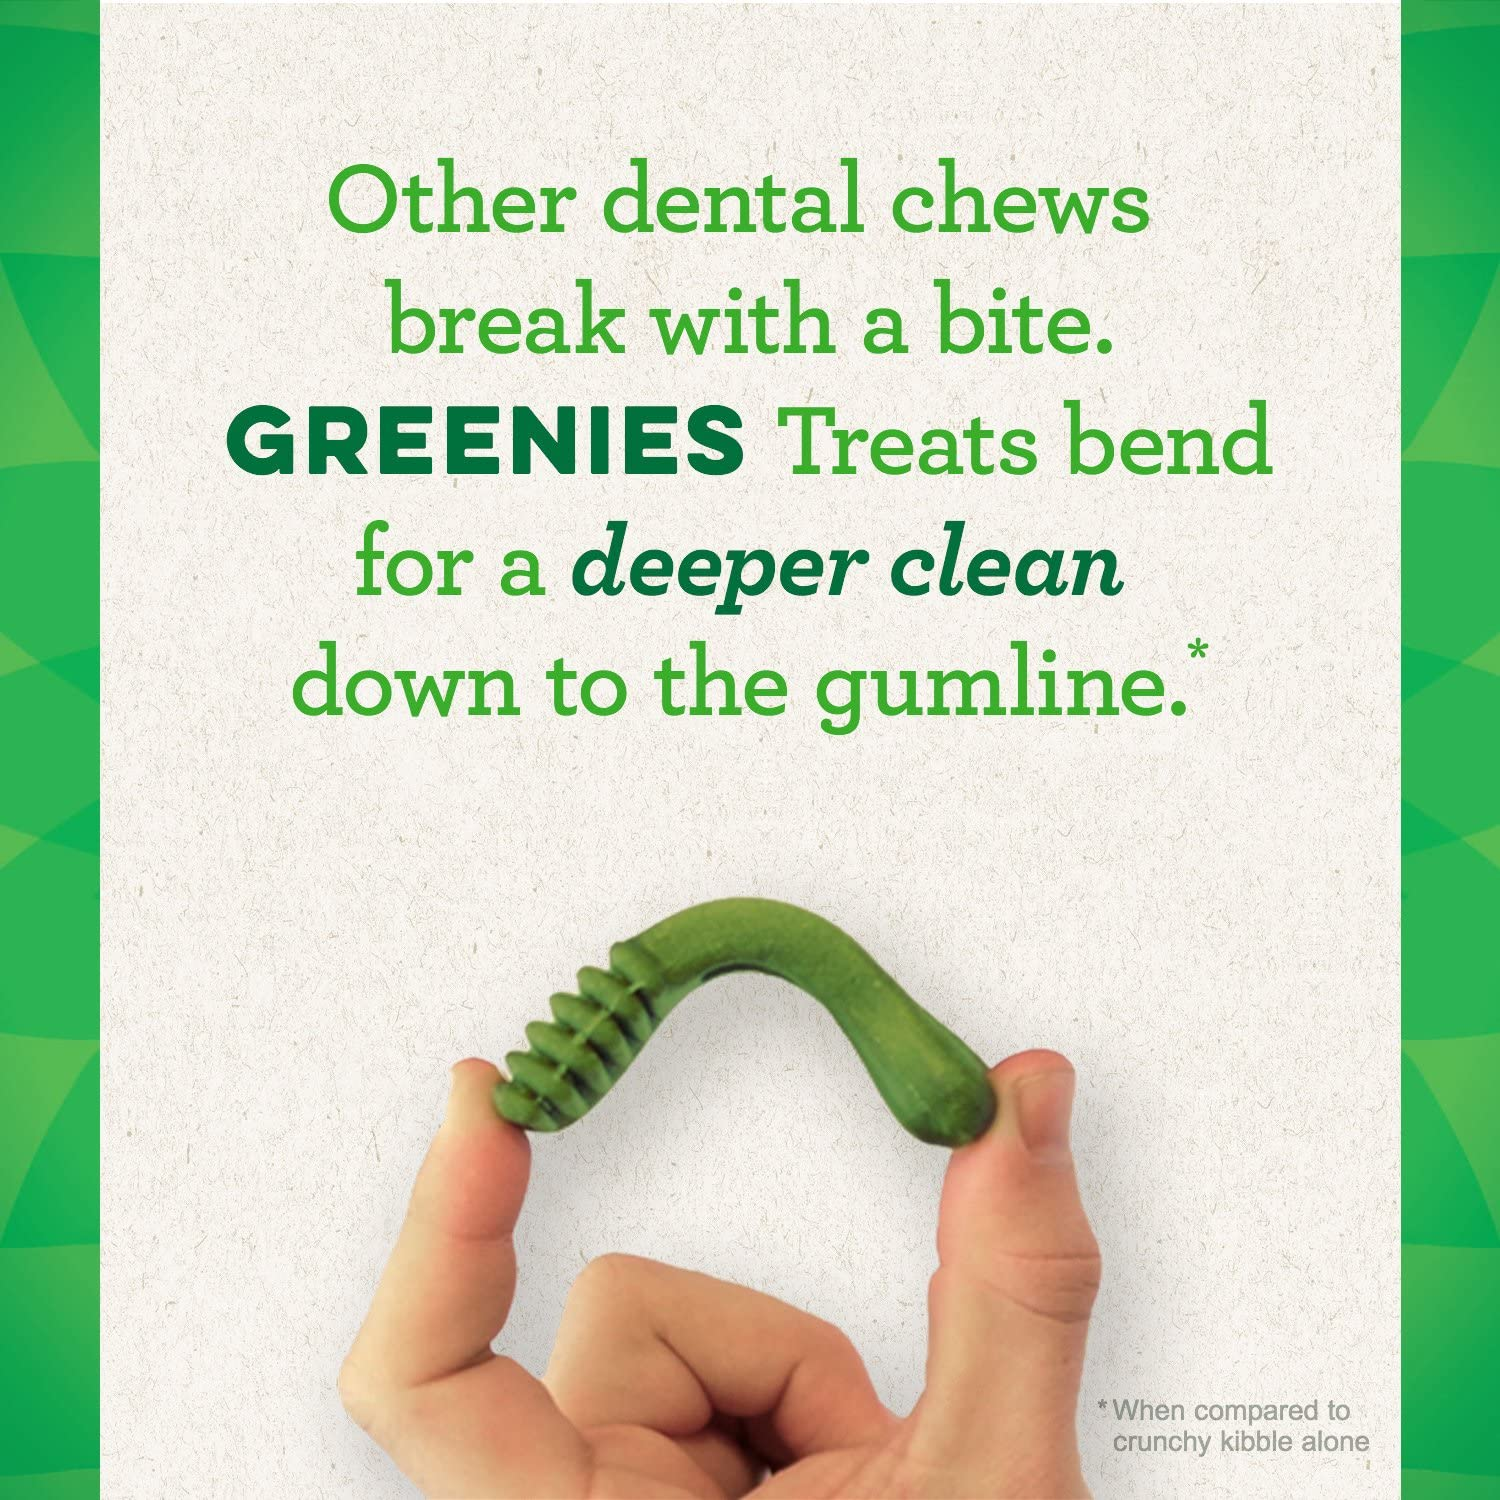 picture of a bendy Greenies treat